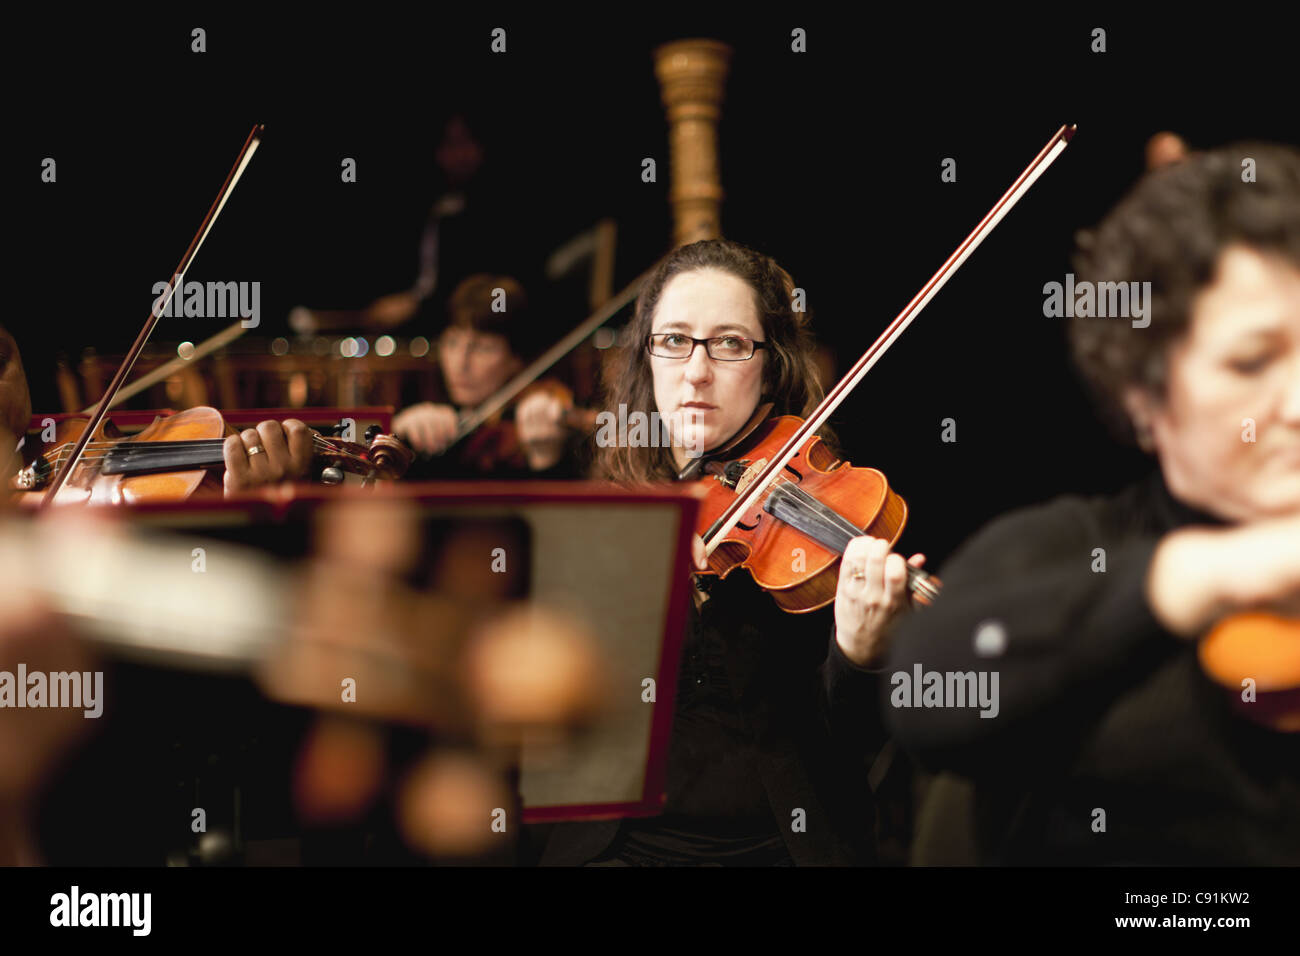 String section in orchestra - Stock Image